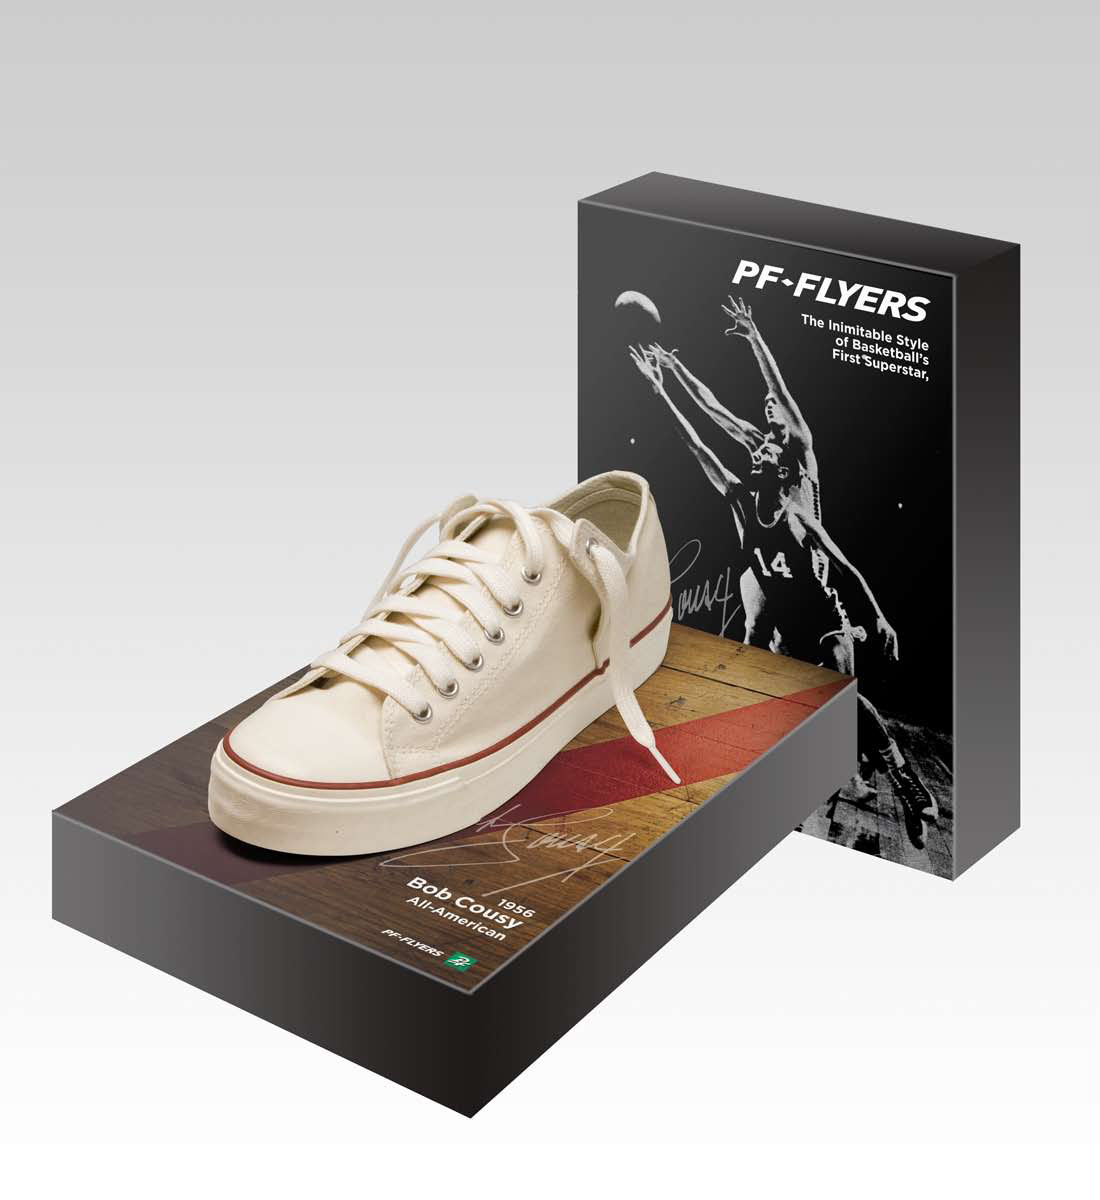 image of PF Flyers shoe dispaly